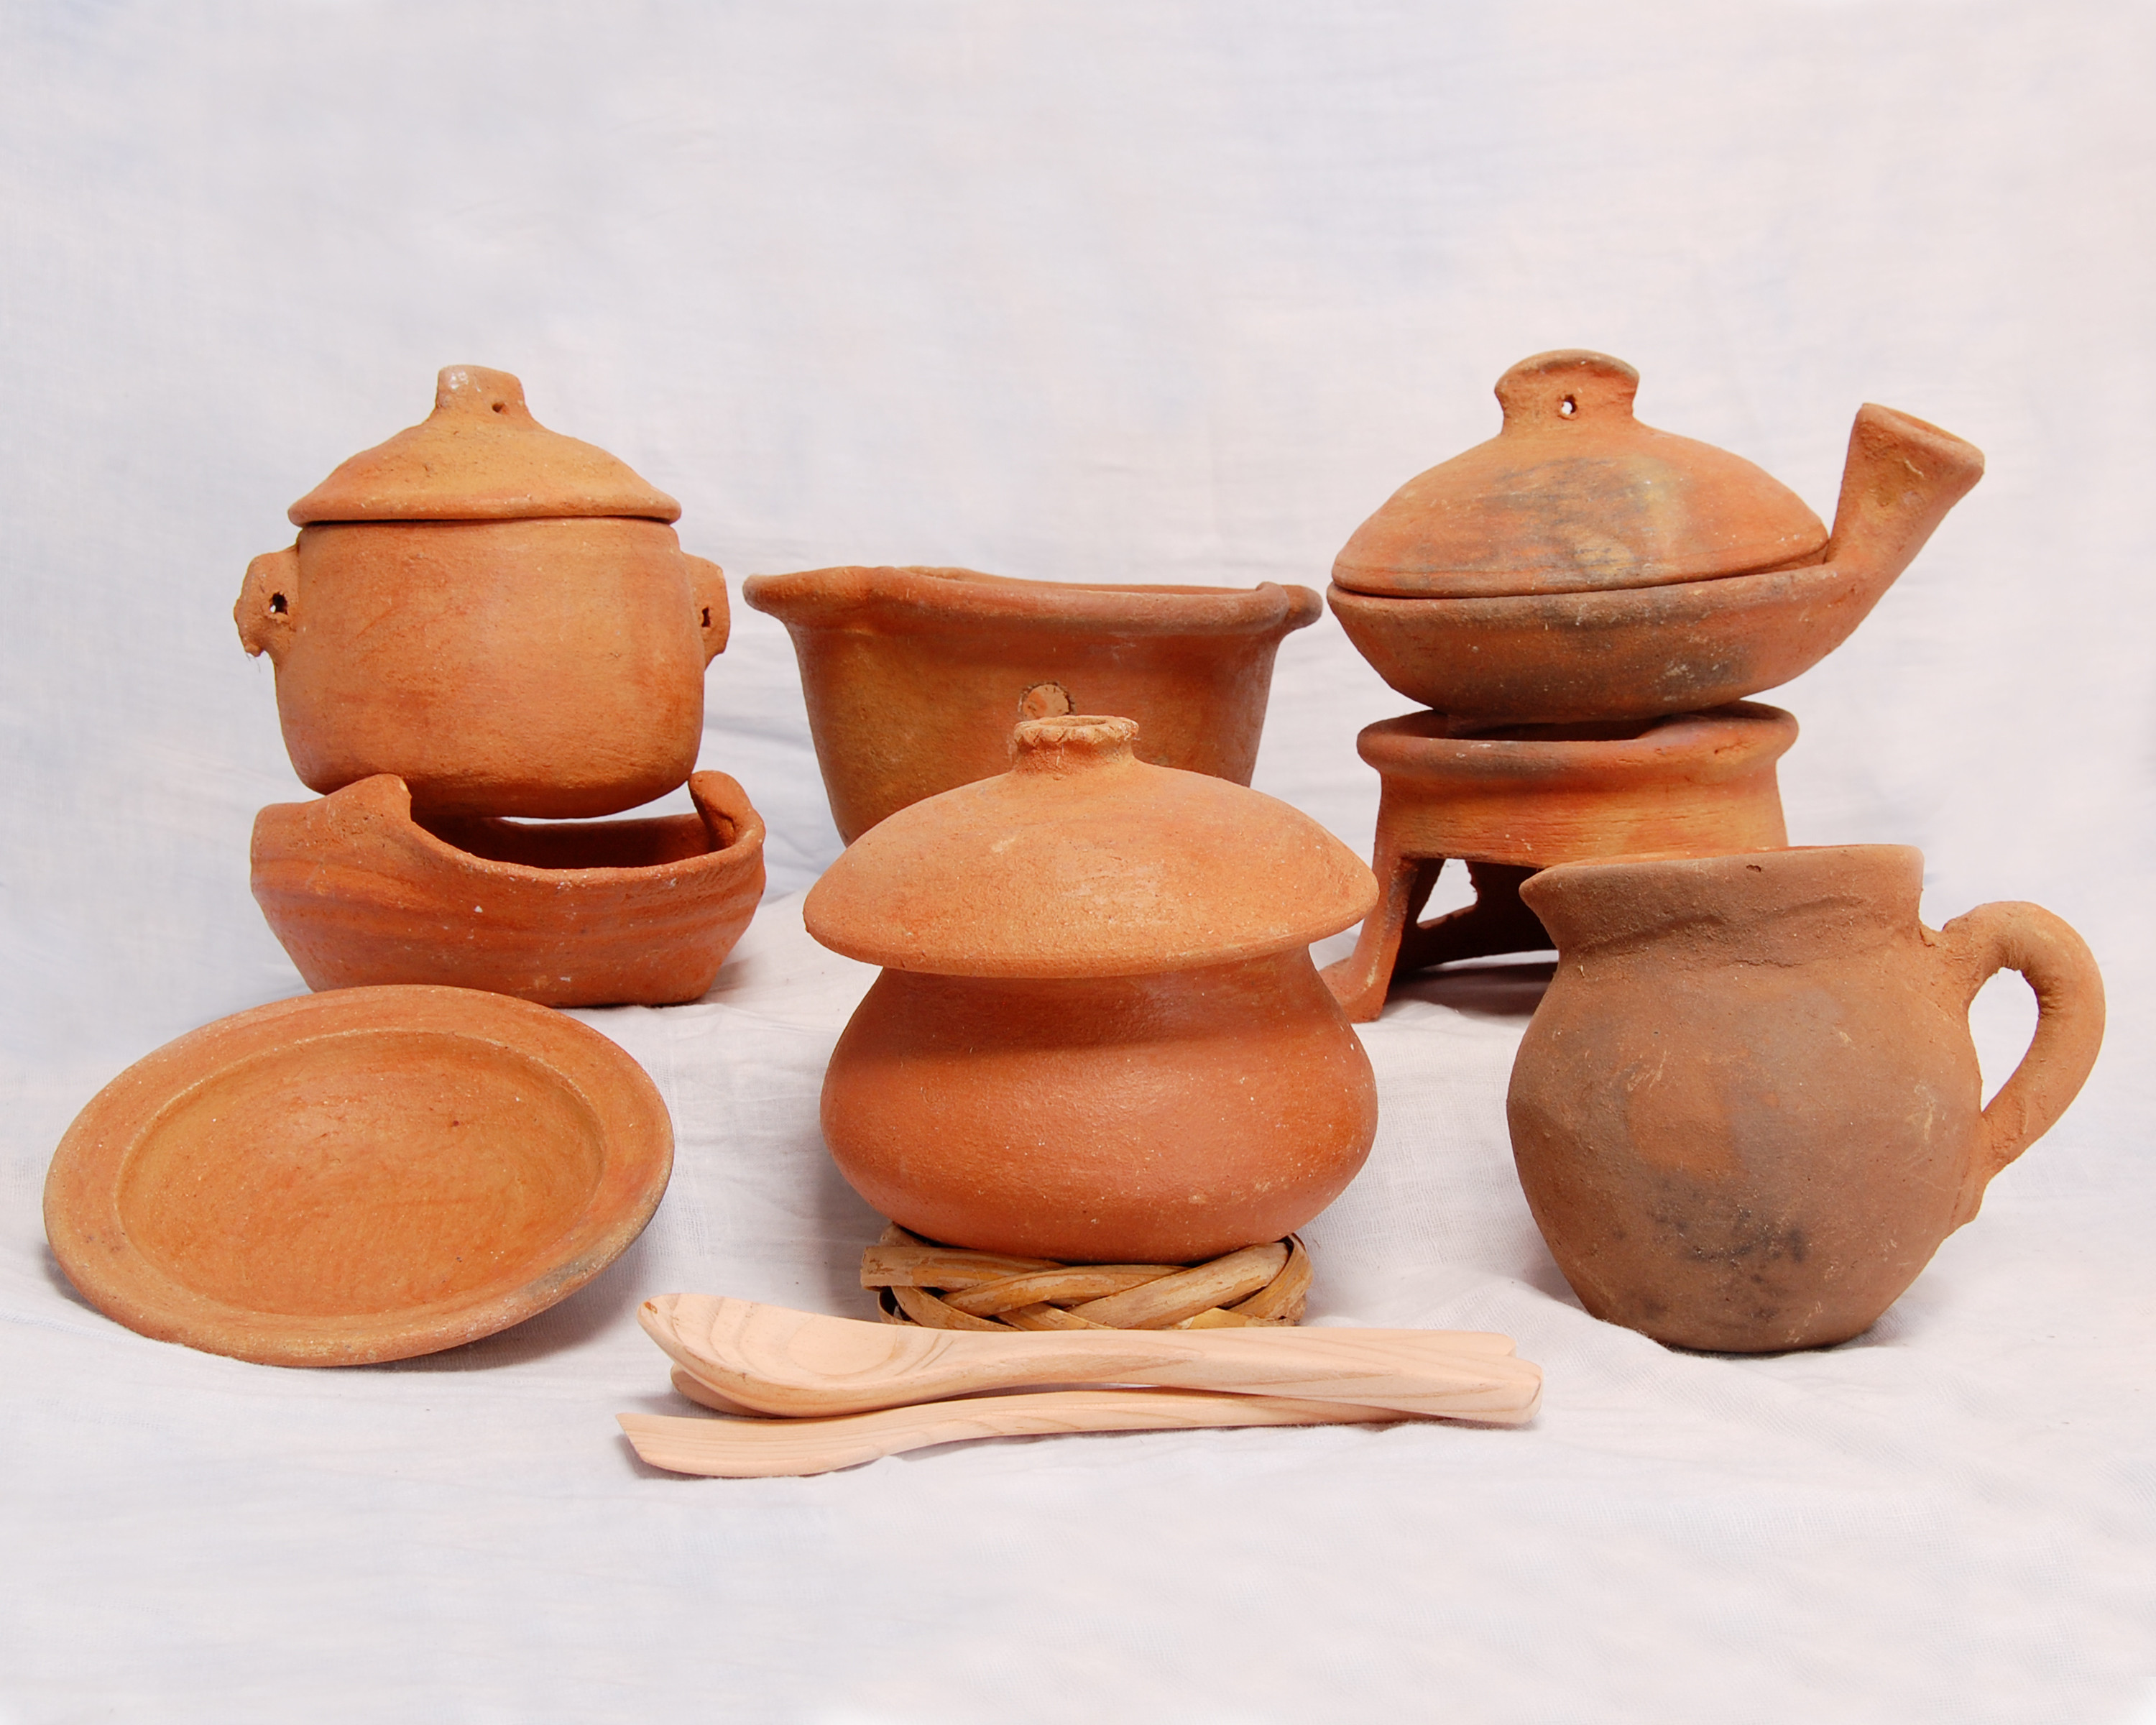 Luxury Clay Pots Pottery Clay for Sale Of Unique Traditional Ceramic Jugs Decorative towel Showcase Pottery Clay for Sale